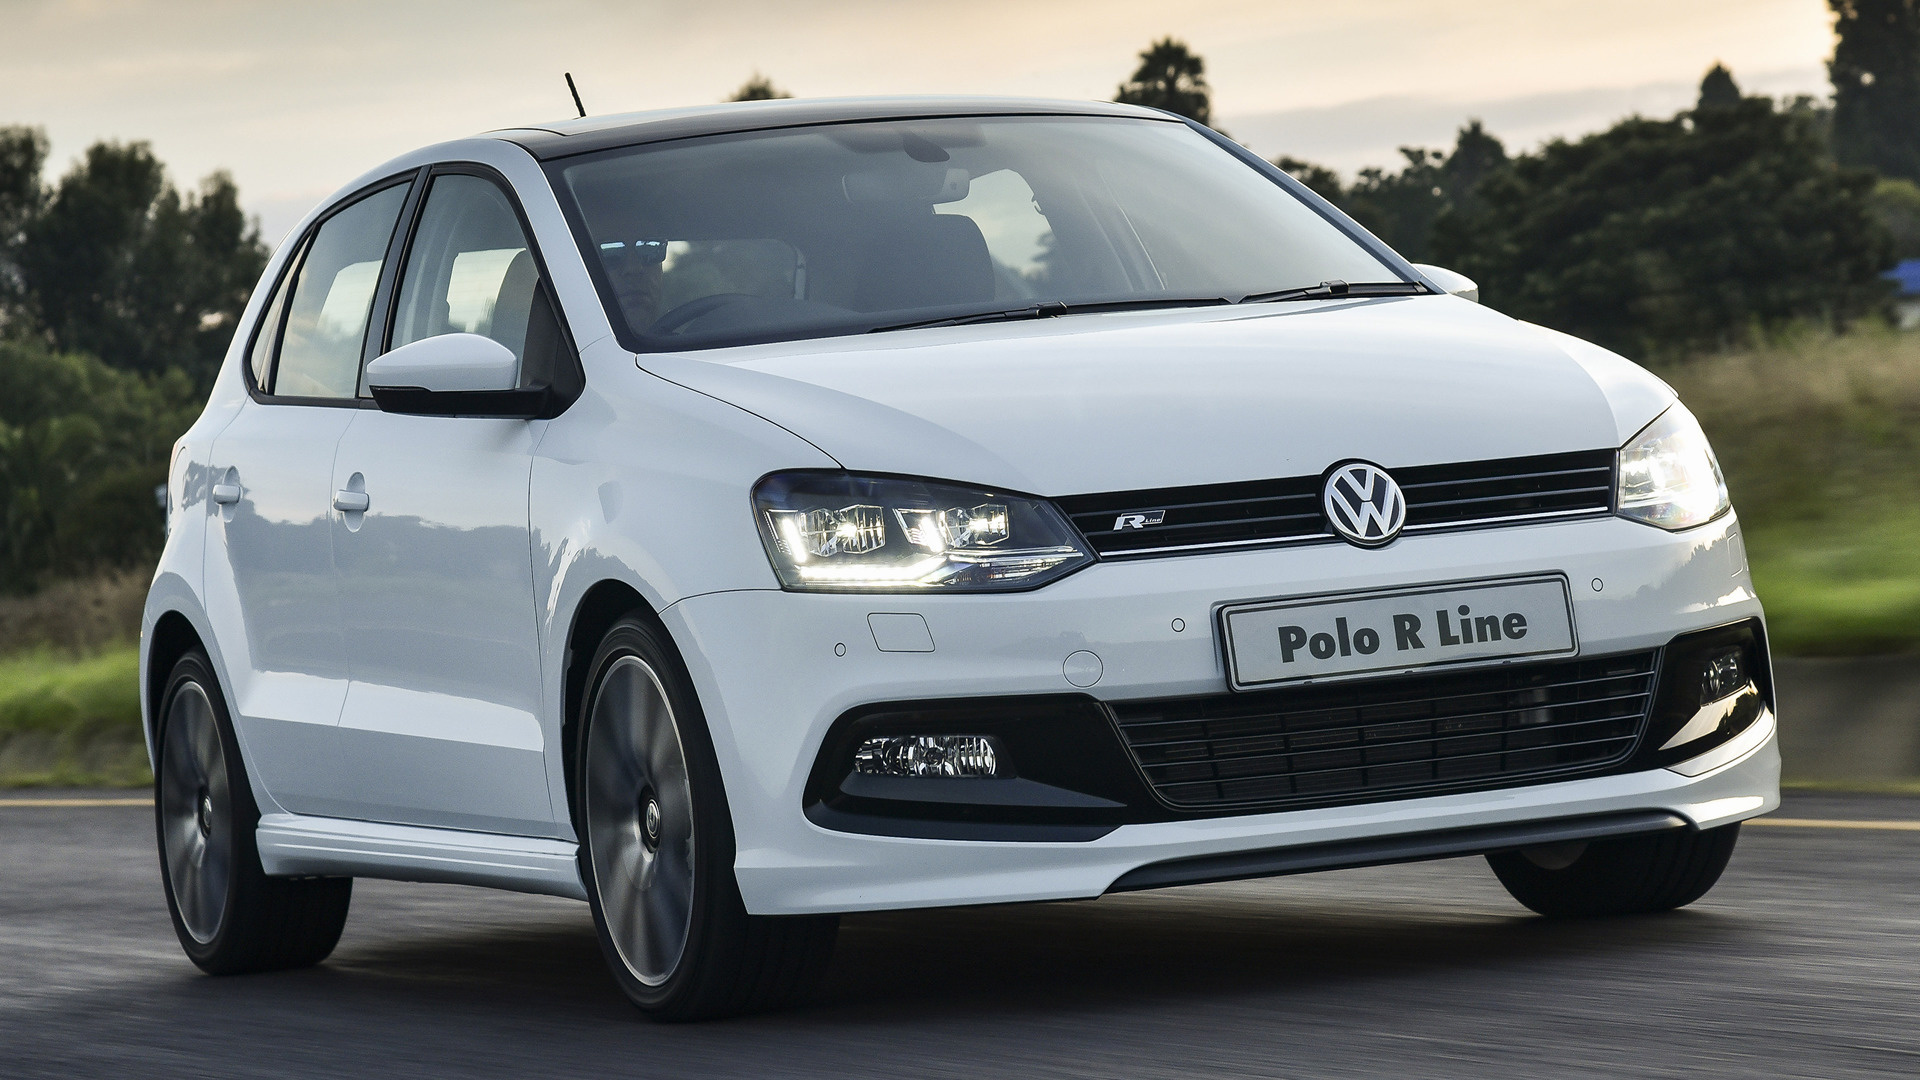 volkswagen polo r line 5 door 2017 za wallpapers and hd images car pixel. Black Bedroom Furniture Sets. Home Design Ideas